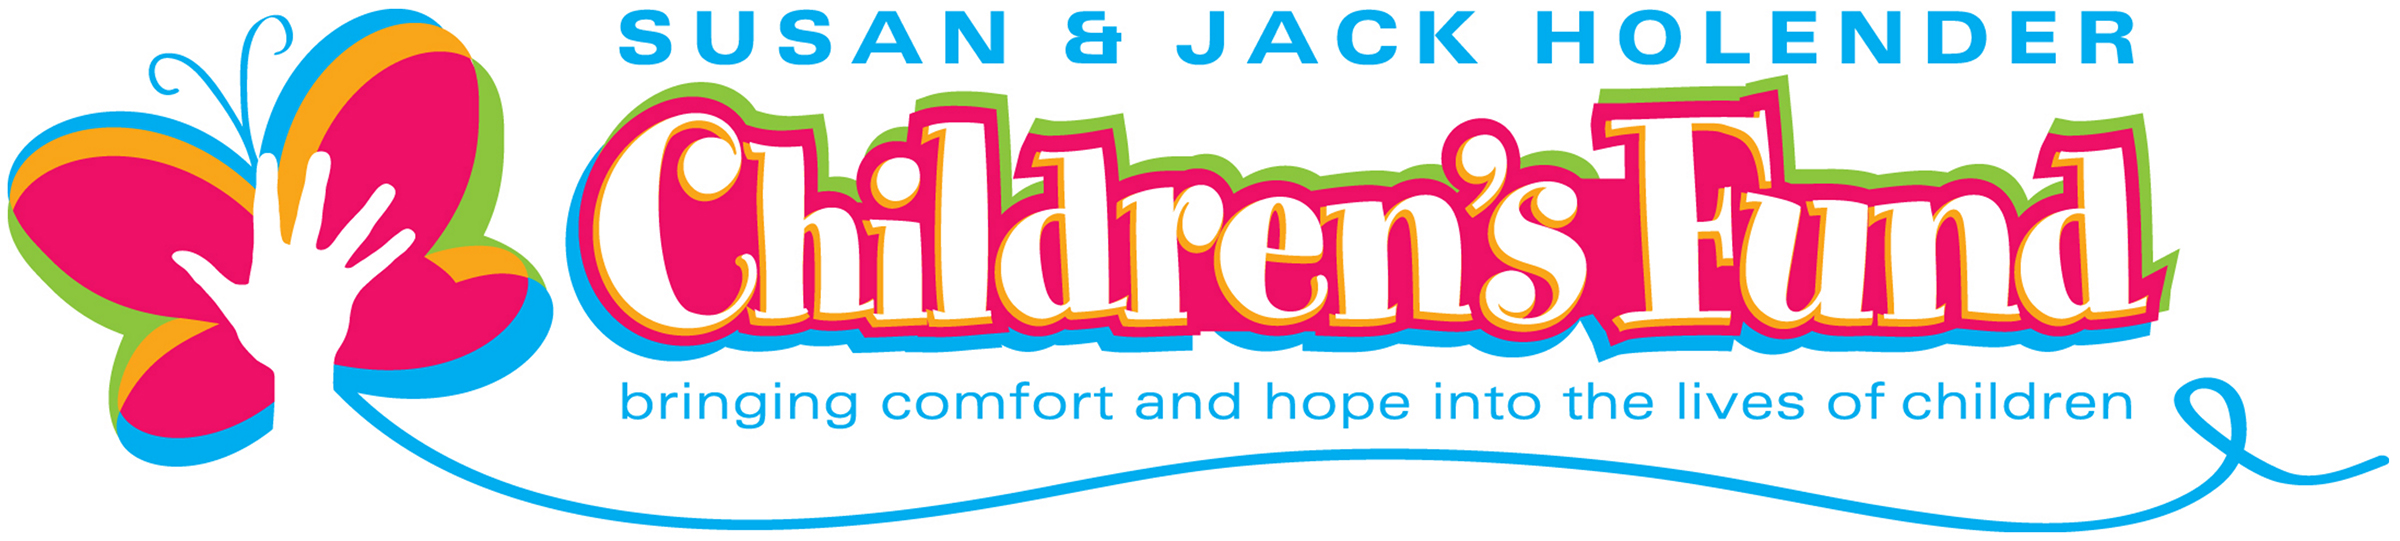 Holender_Childrens_Fund_Logo.jpg